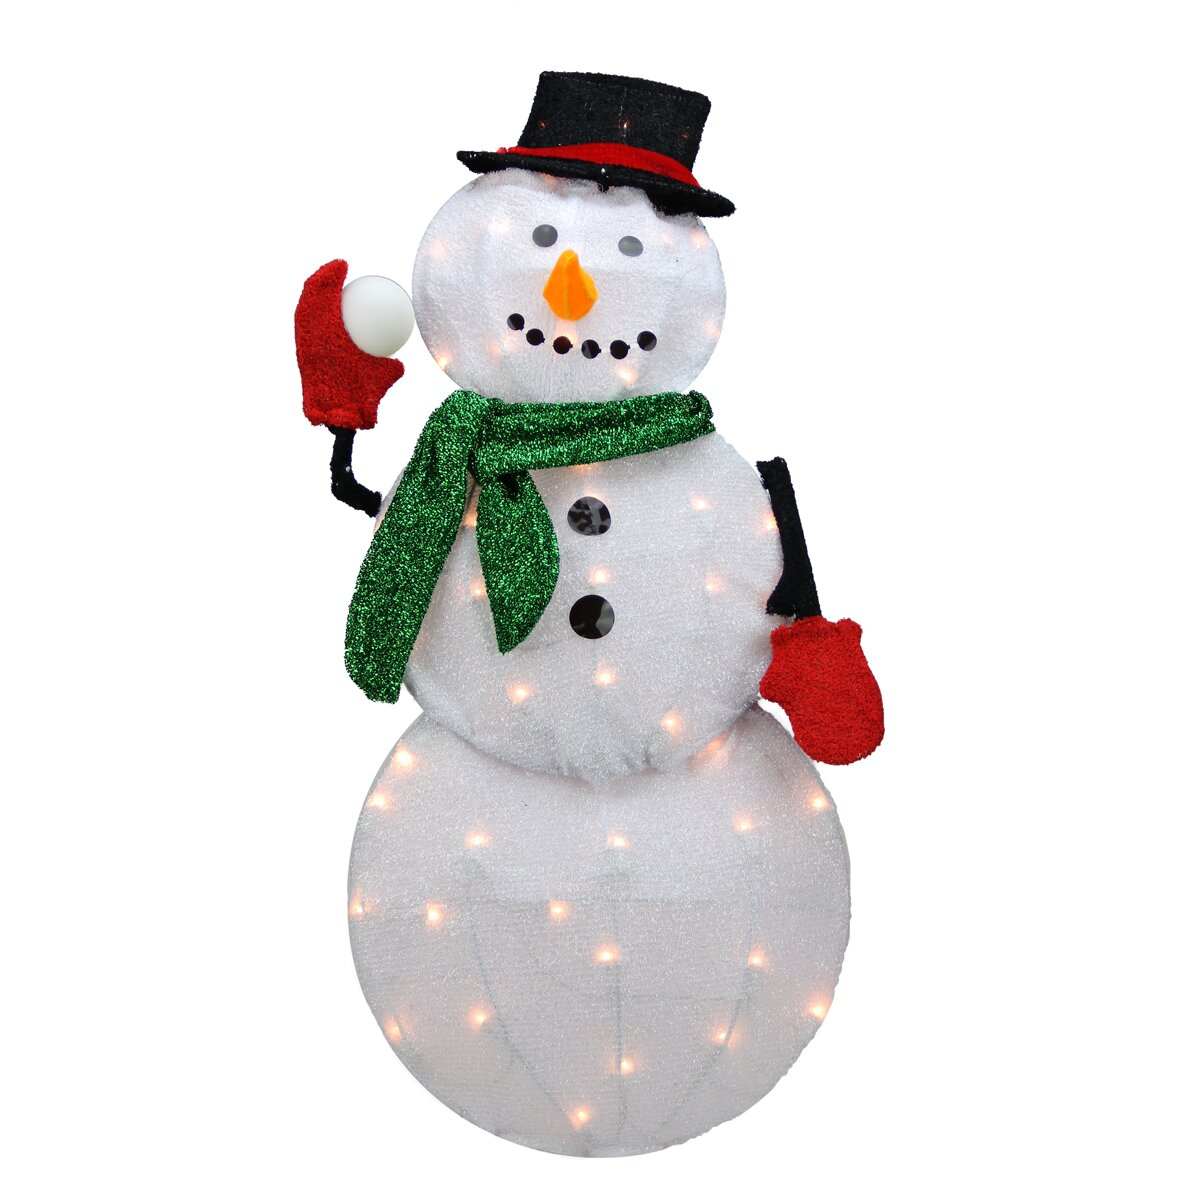 Northlight candy lane pre lit cane 2d winter snowman for Pre lit outdoor decorations